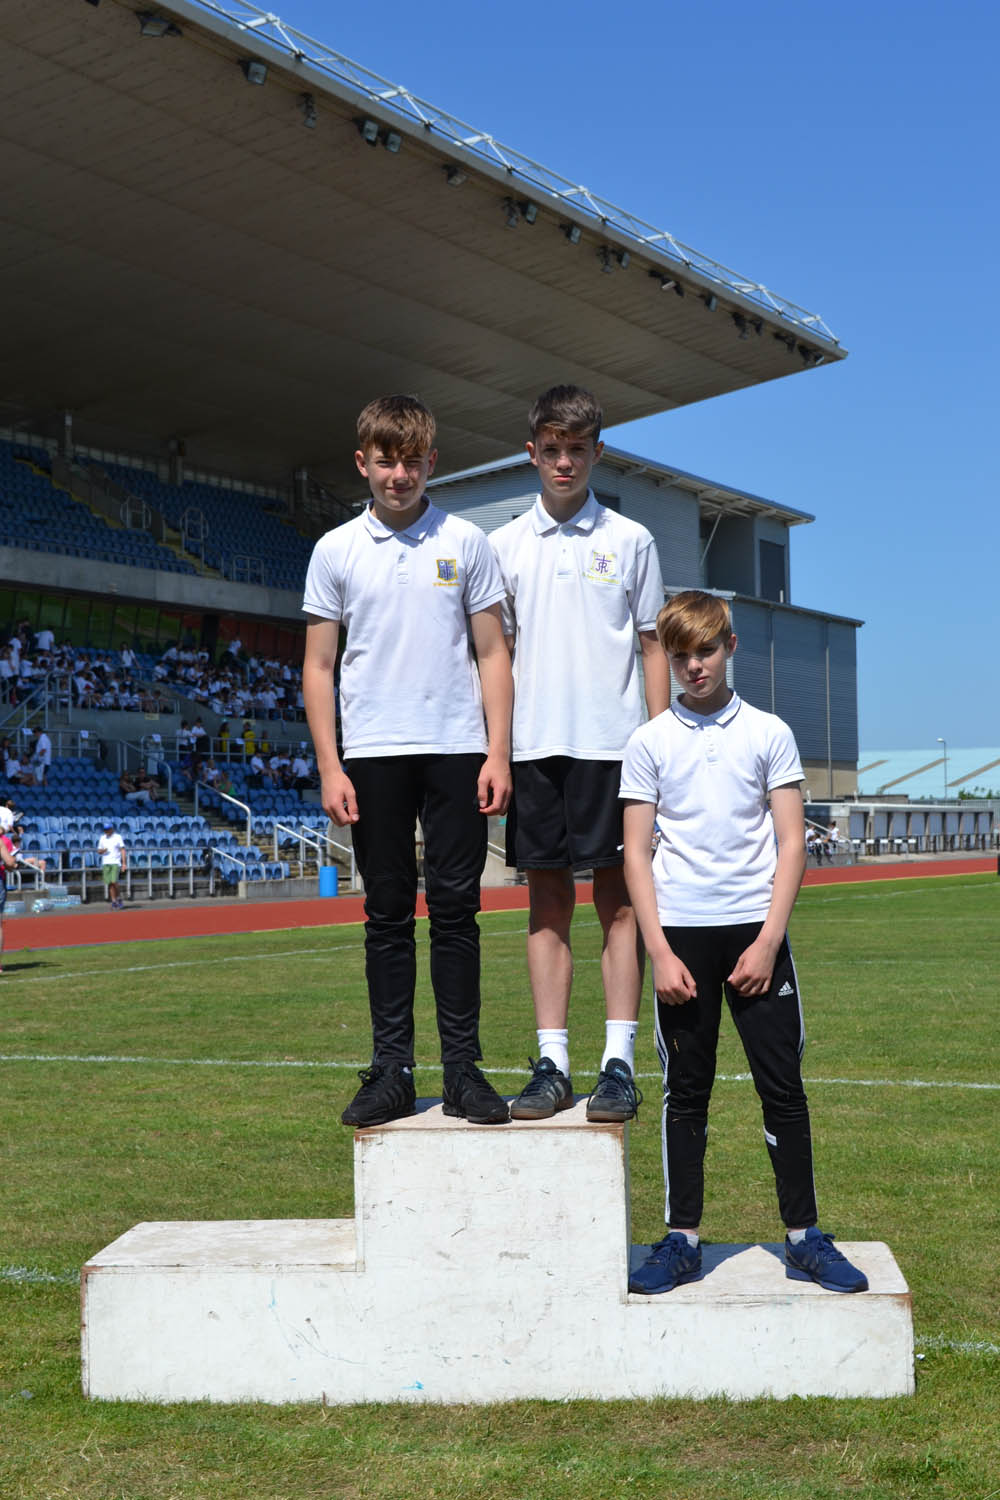 Year 8 Boys High Jump